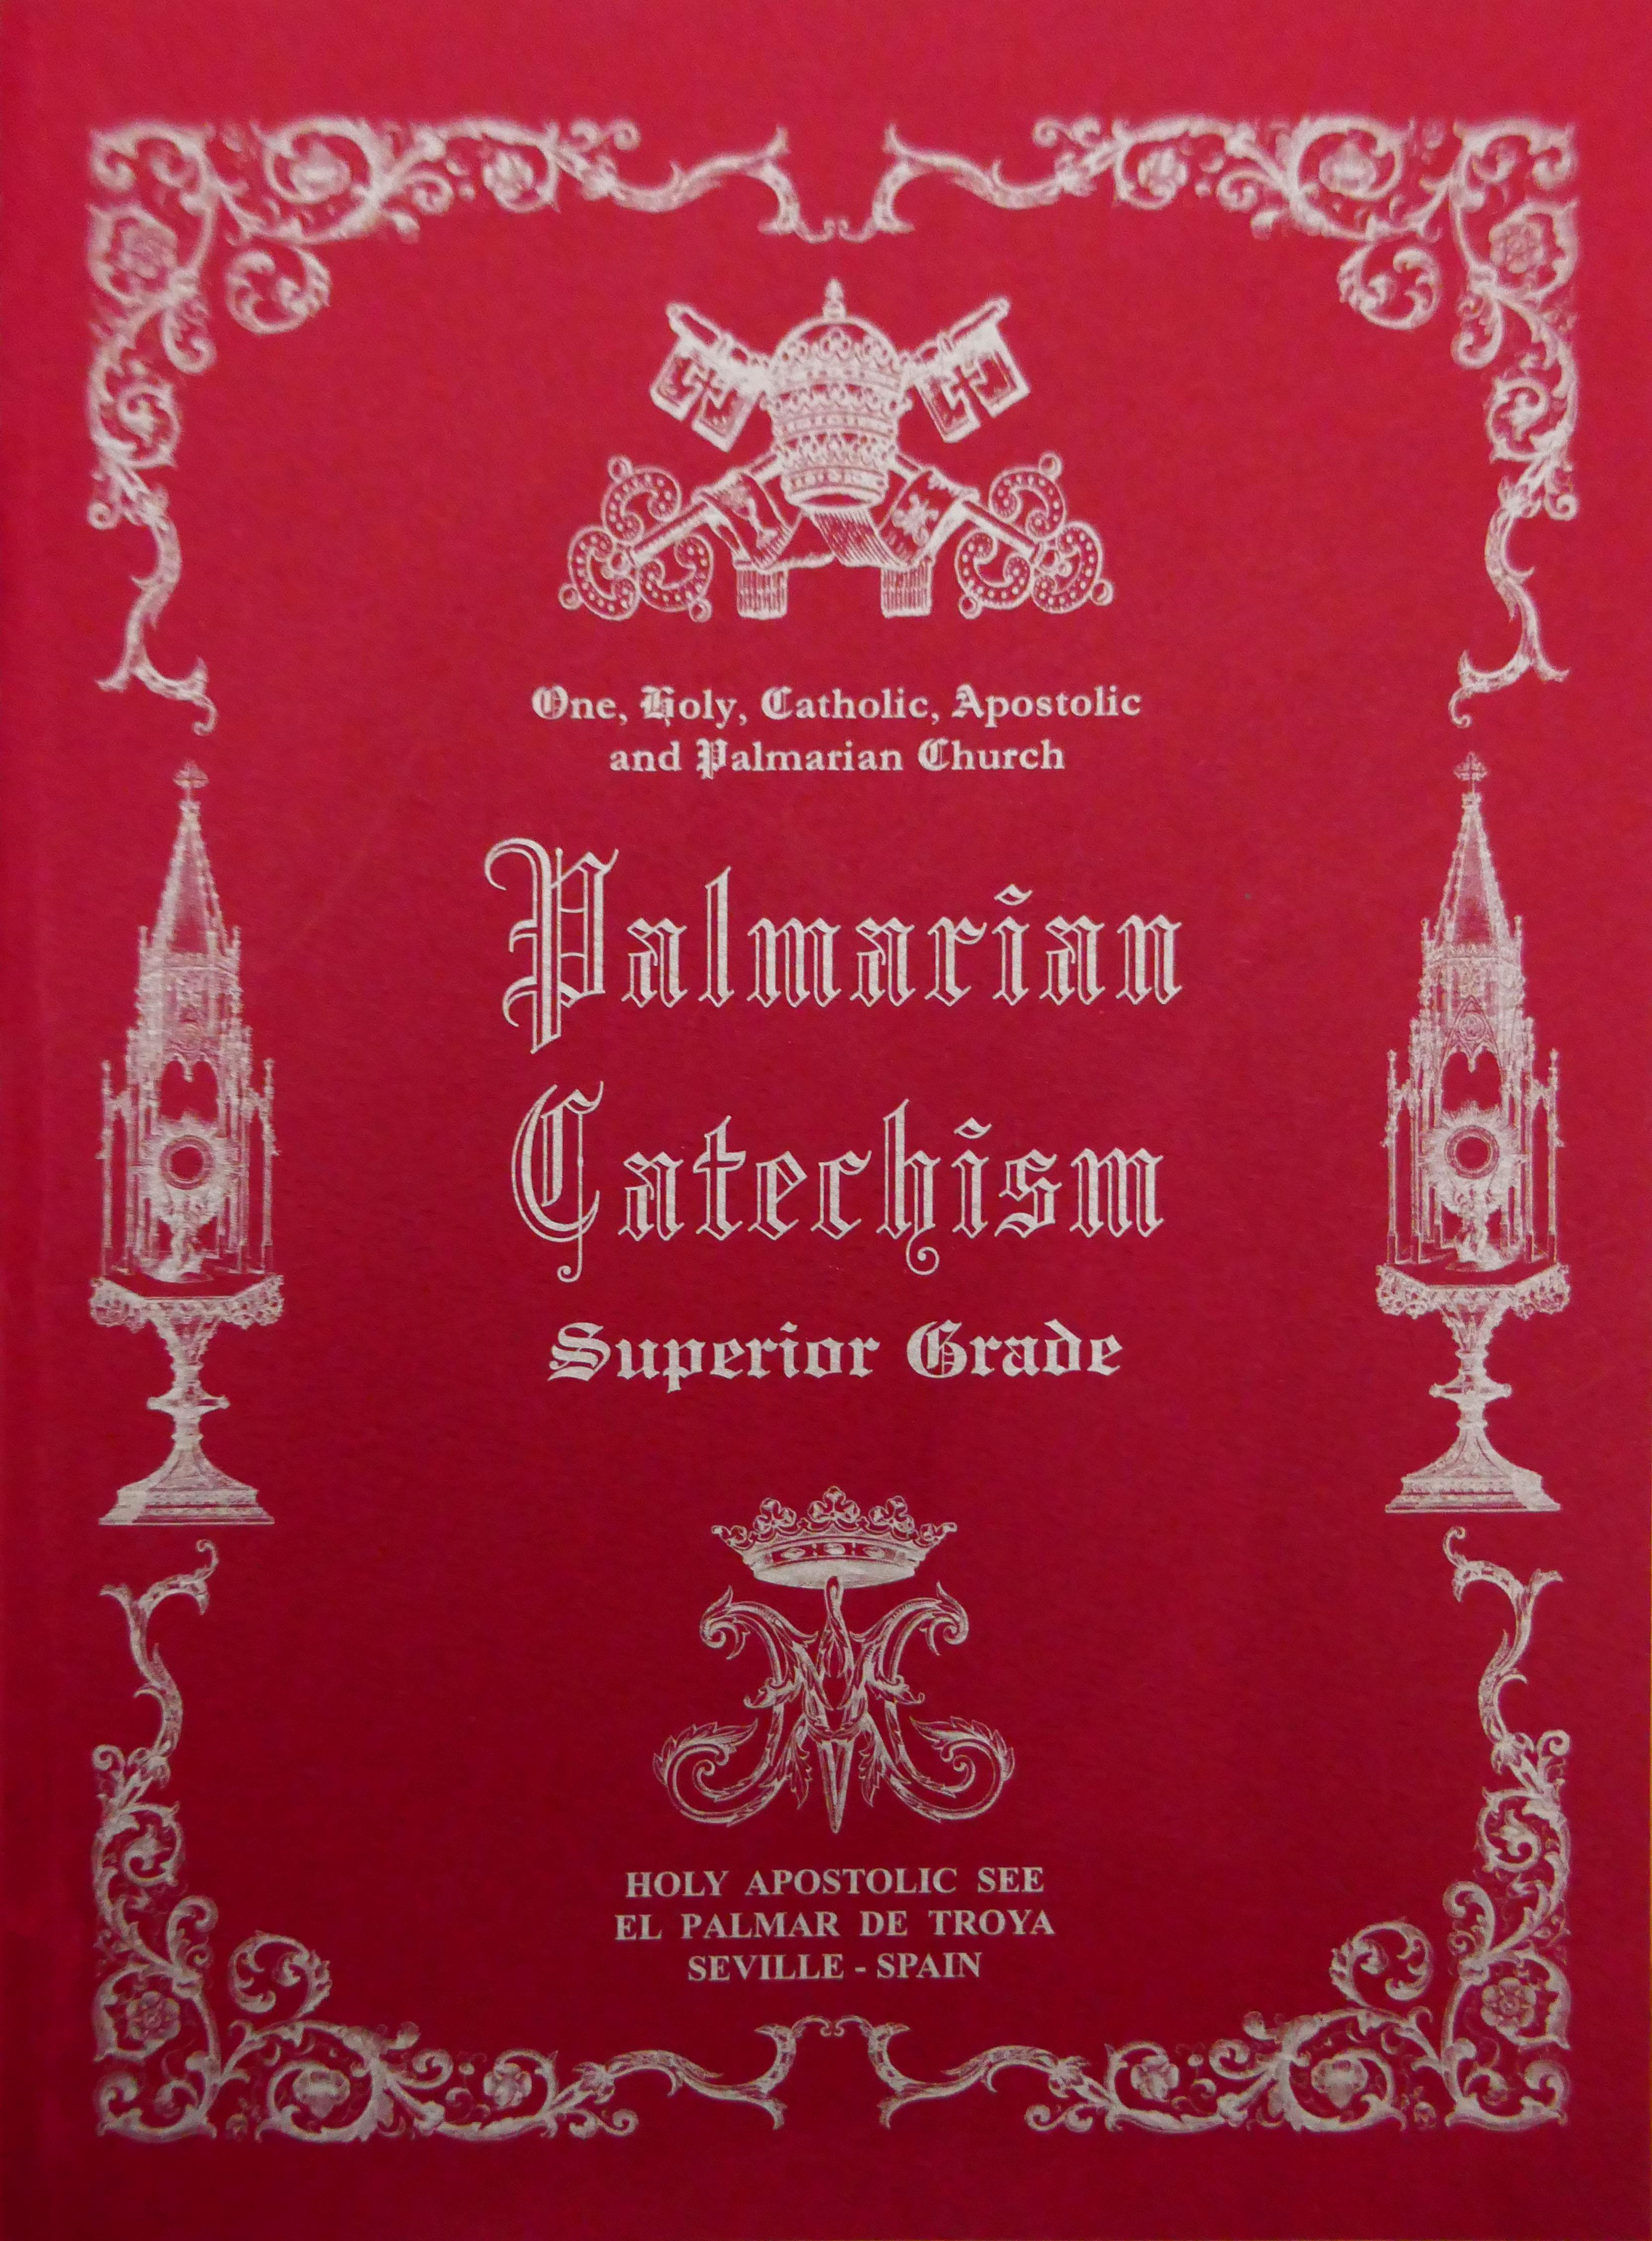 """<a href=""""https://www.palmarianchurch.org/wp-content/uploads/2019/03/Extracts-from-the-Palmarian-Catechism.pdf"""" title=""""Extracts from the Palmarian Catechism"""">Extracts from the Palmarian Catechism  <br> <br>Vedeți mai departe</a>"""